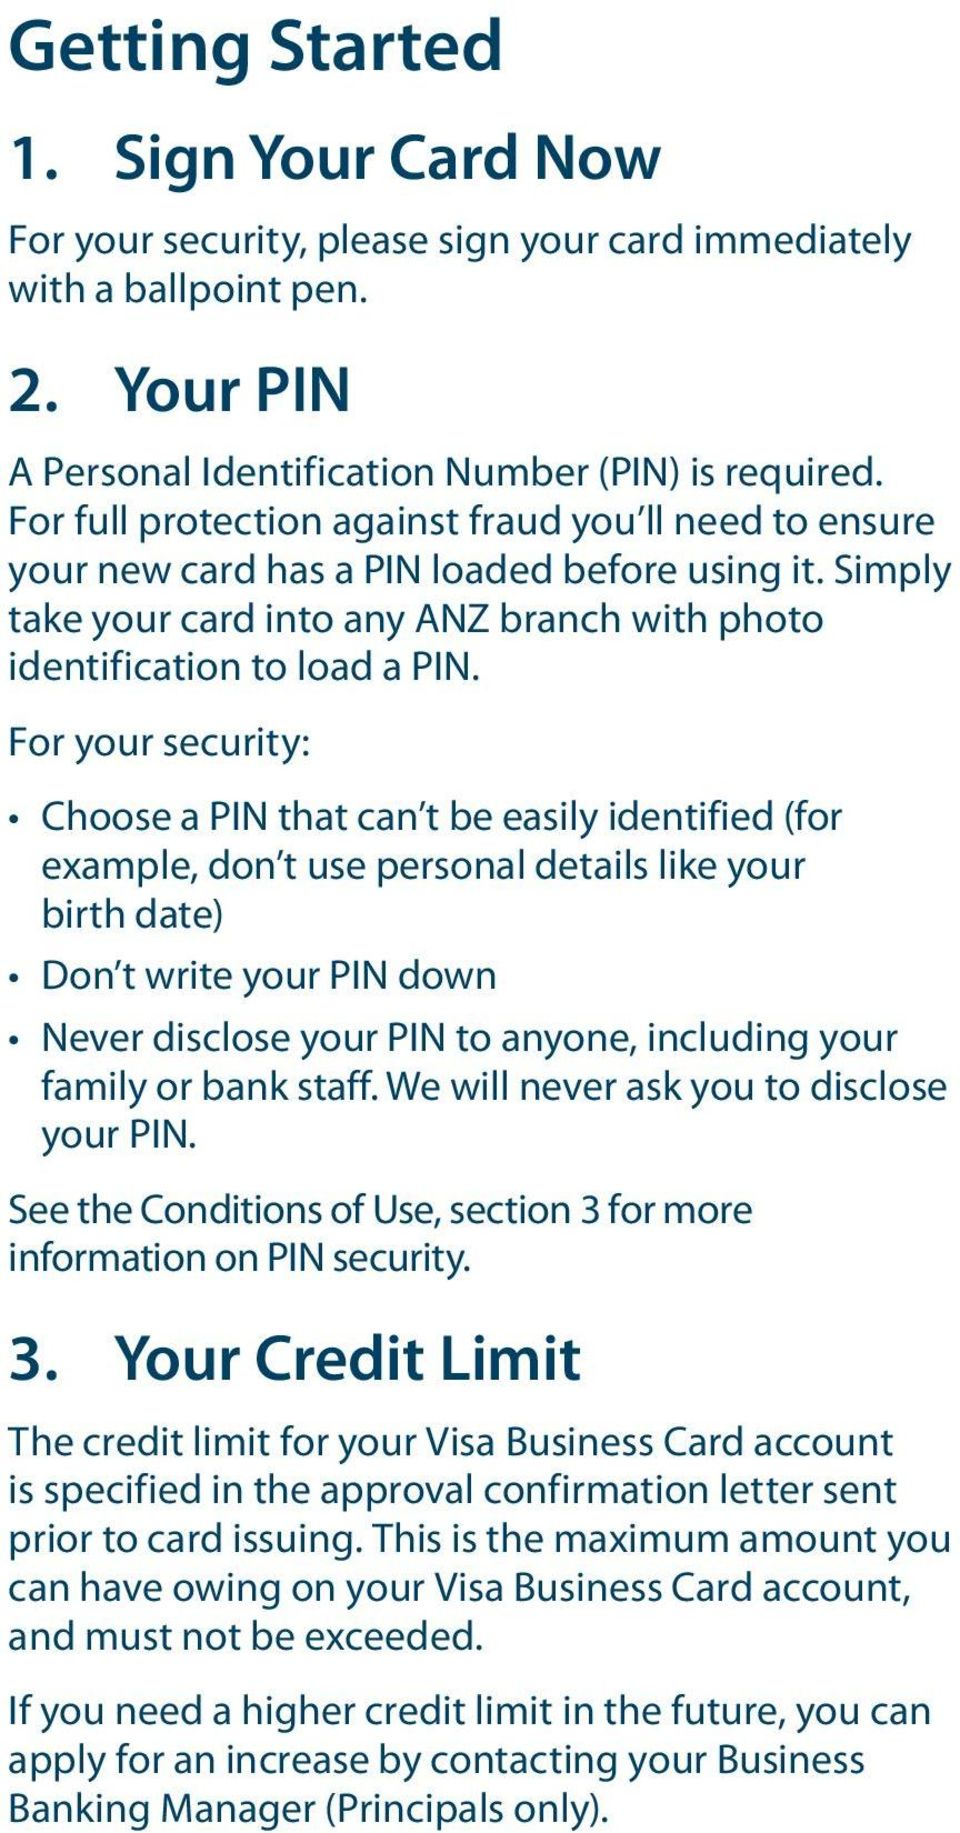 For your security: Choose a PIN that can t be easily identified (for example, don t use personal details like your birth date) Don t write your PIN down Never disclose your PIN to anyone, including